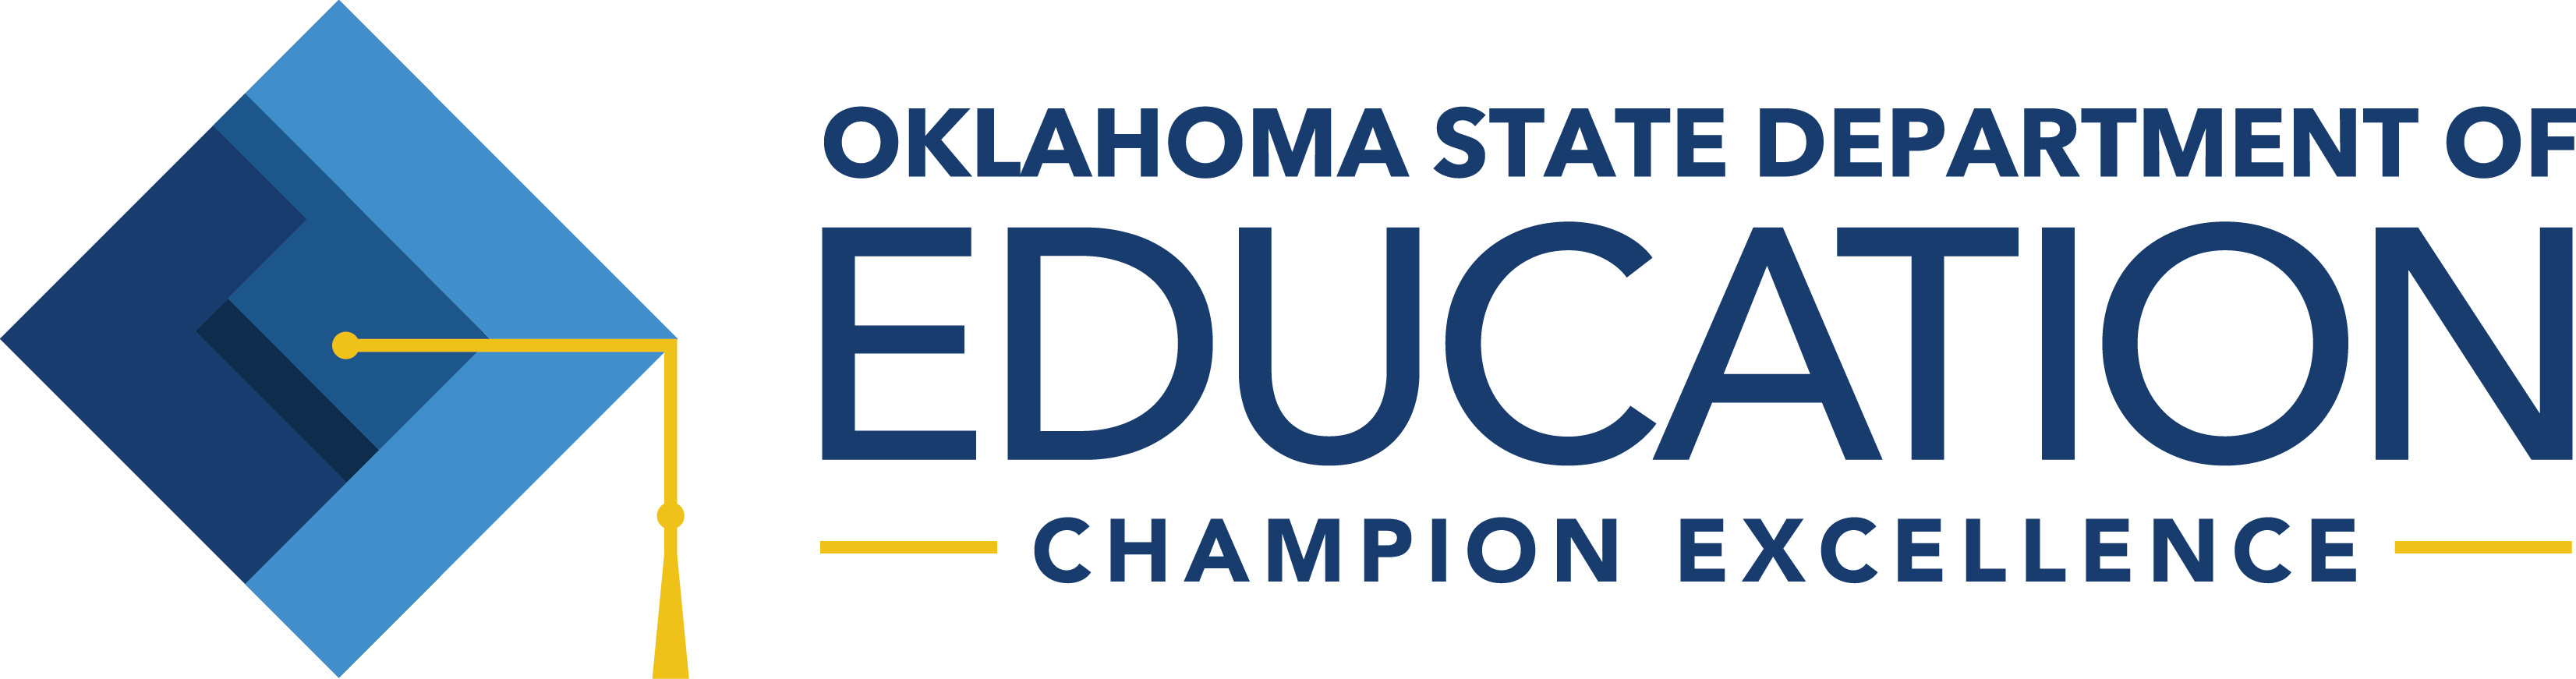 Istation approved to provide reading assessments to Oklahoma.